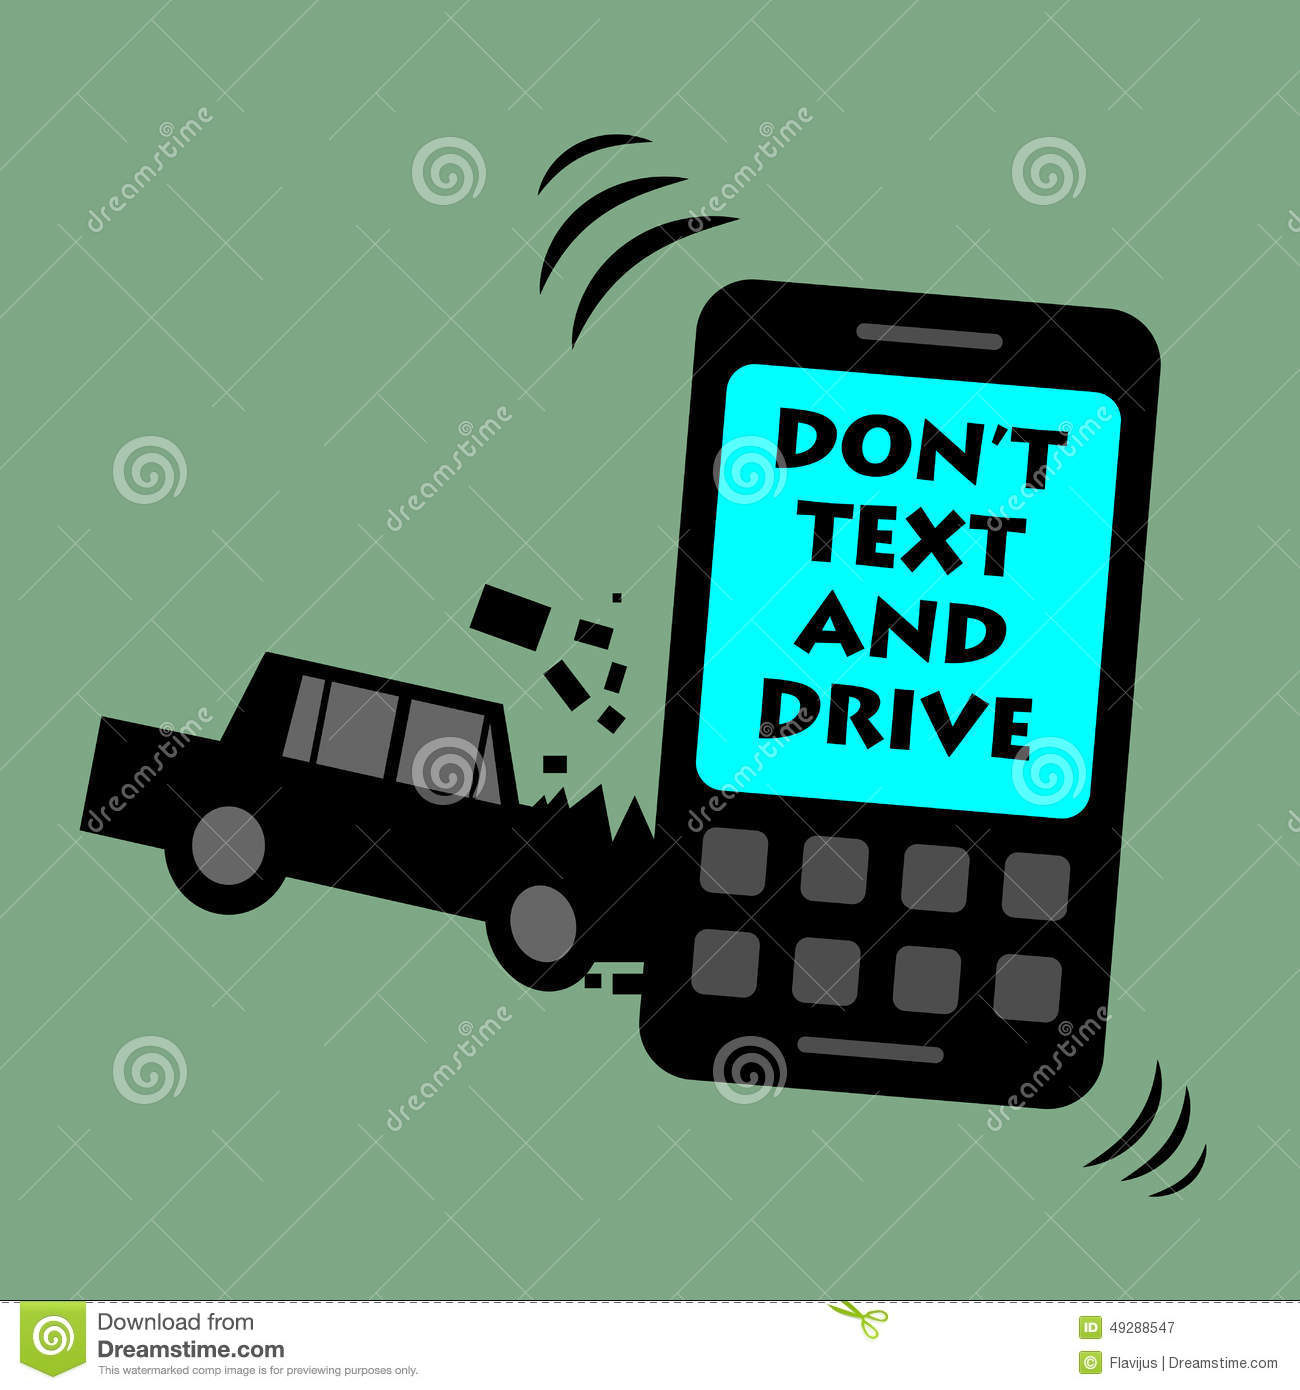 Don't Text And Drive Stock Vector - Image: 49288547